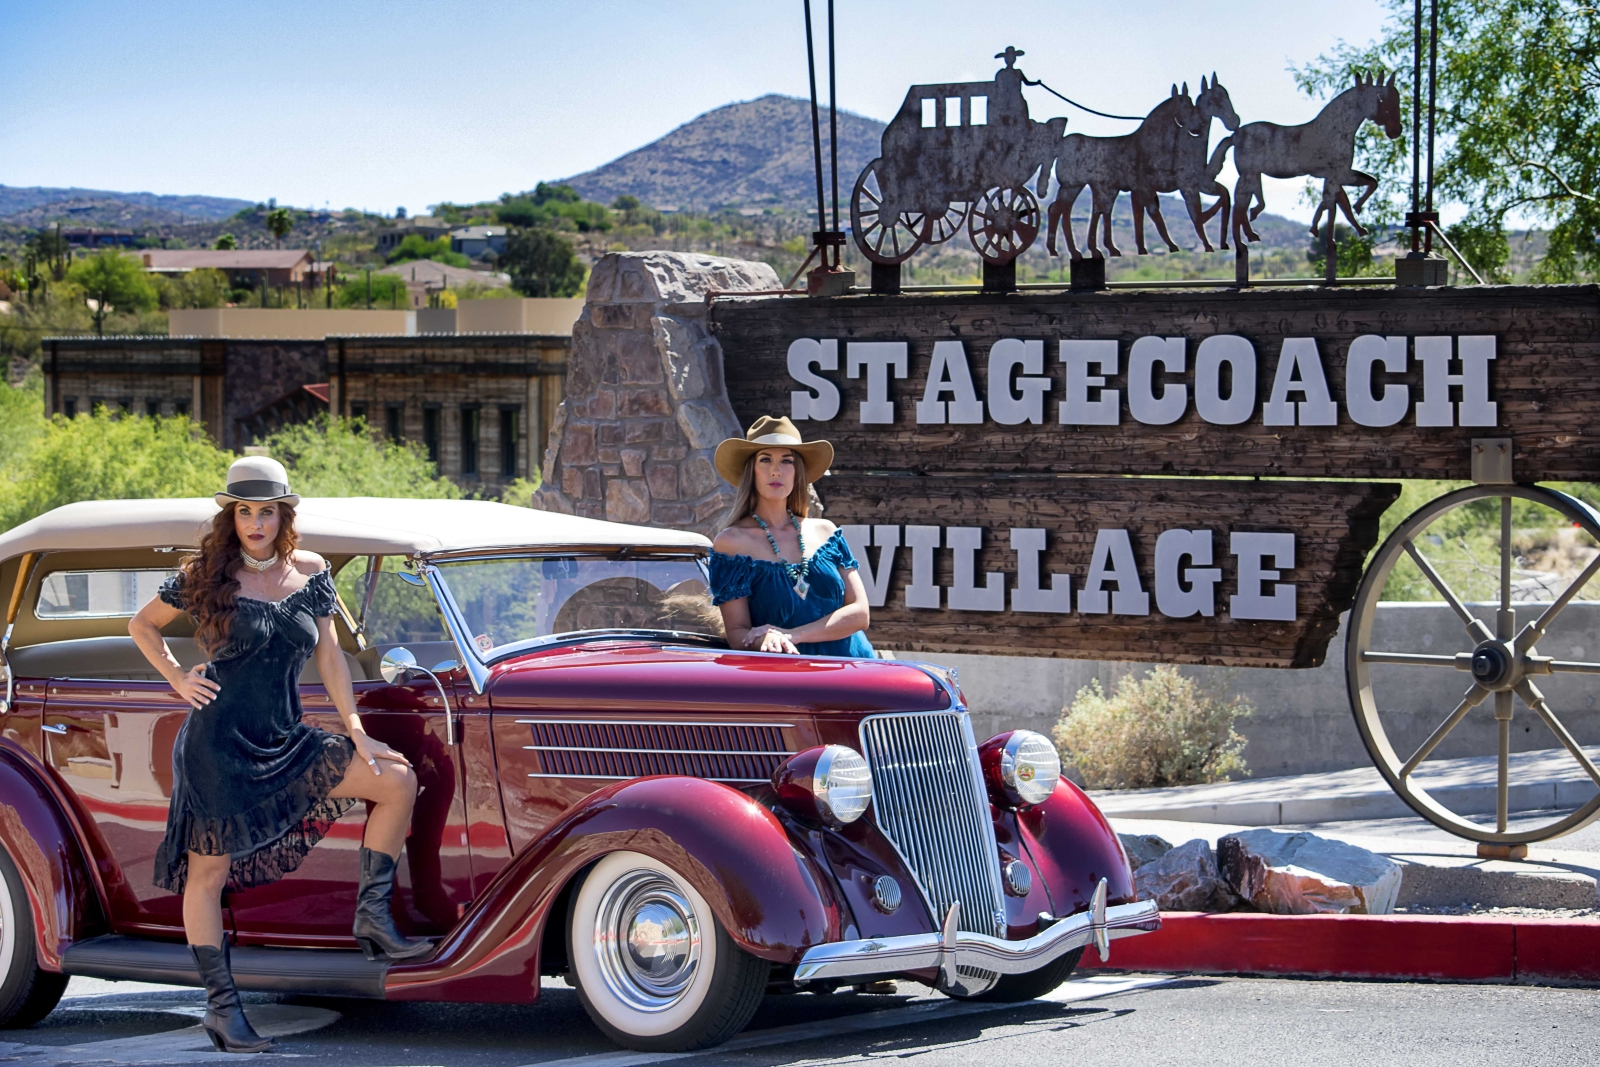 stagecoach village with antique car